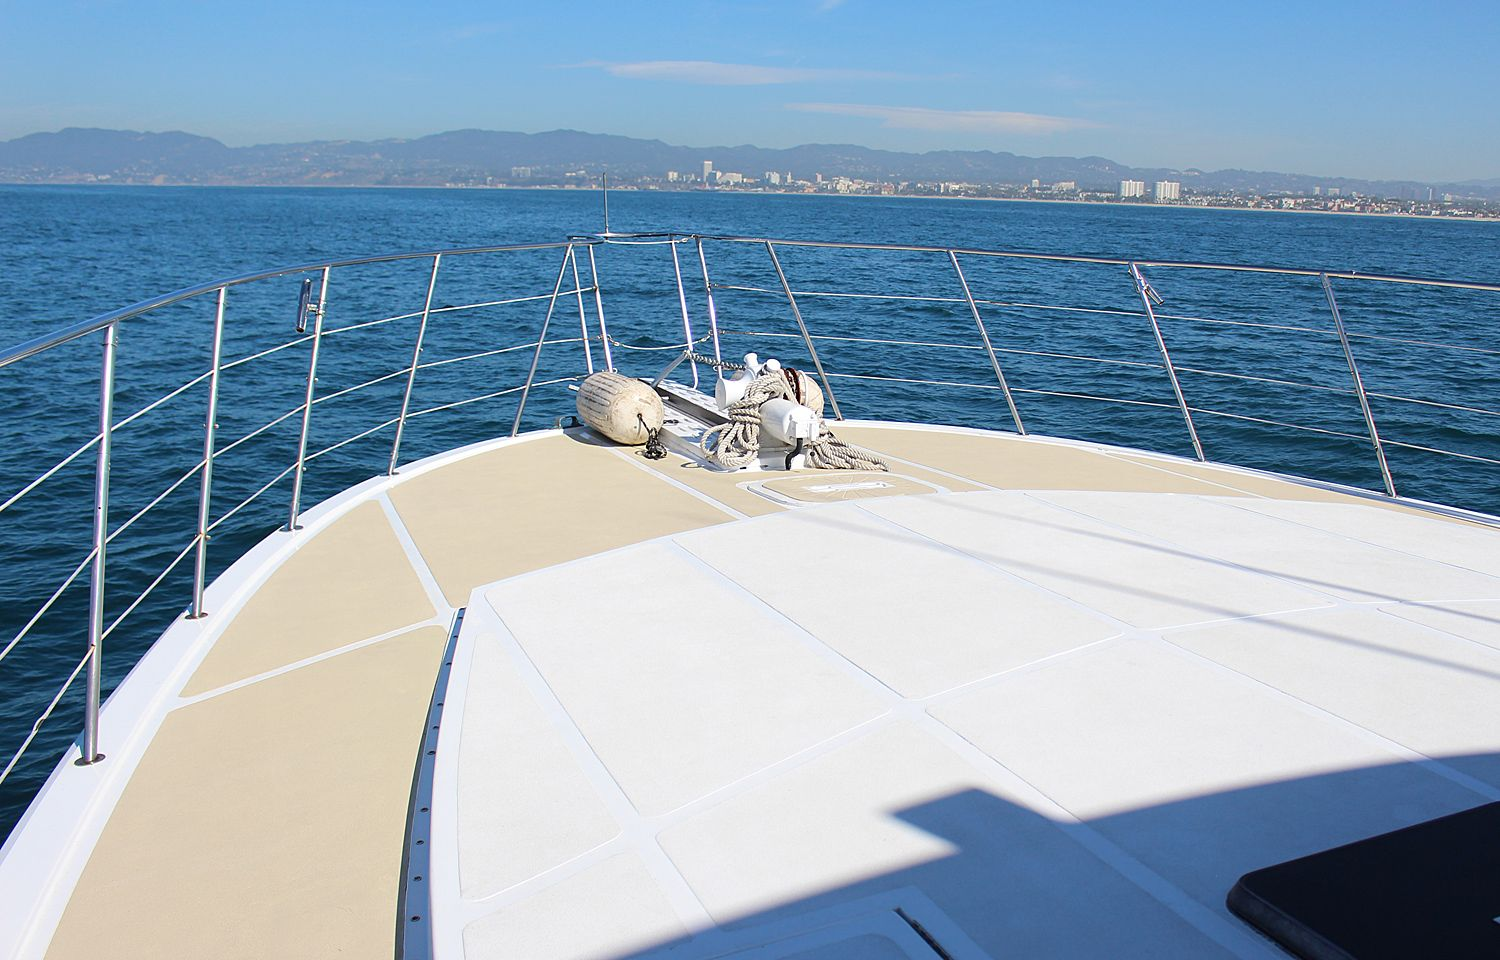 Yacht Catering Private Chef Food Beverage Yacht Newport Beach Private Chef